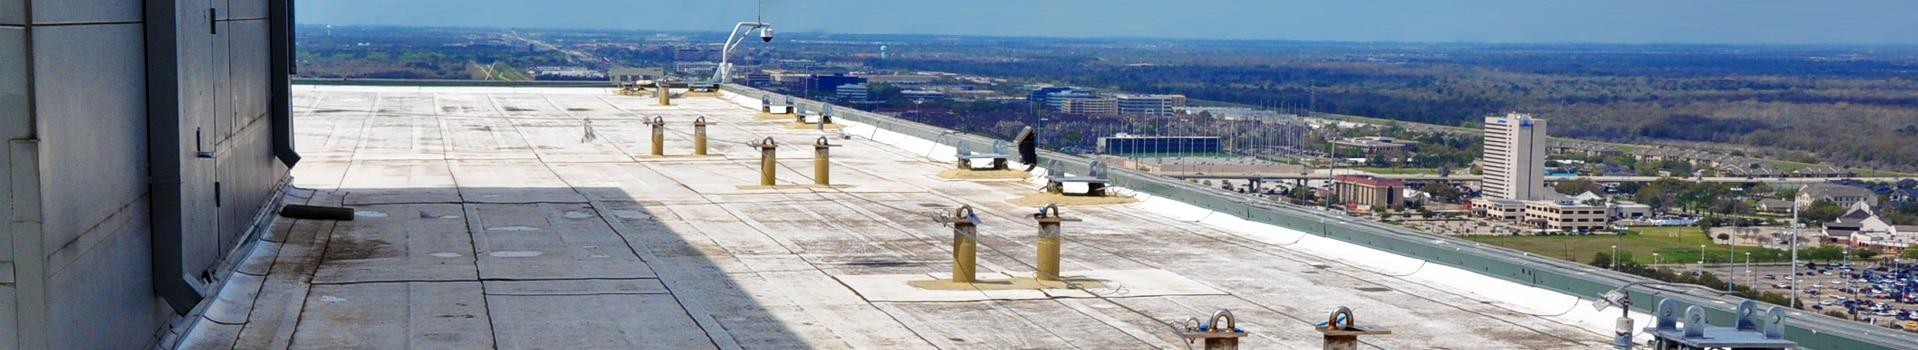 fall protection systems for building exterior maintenance